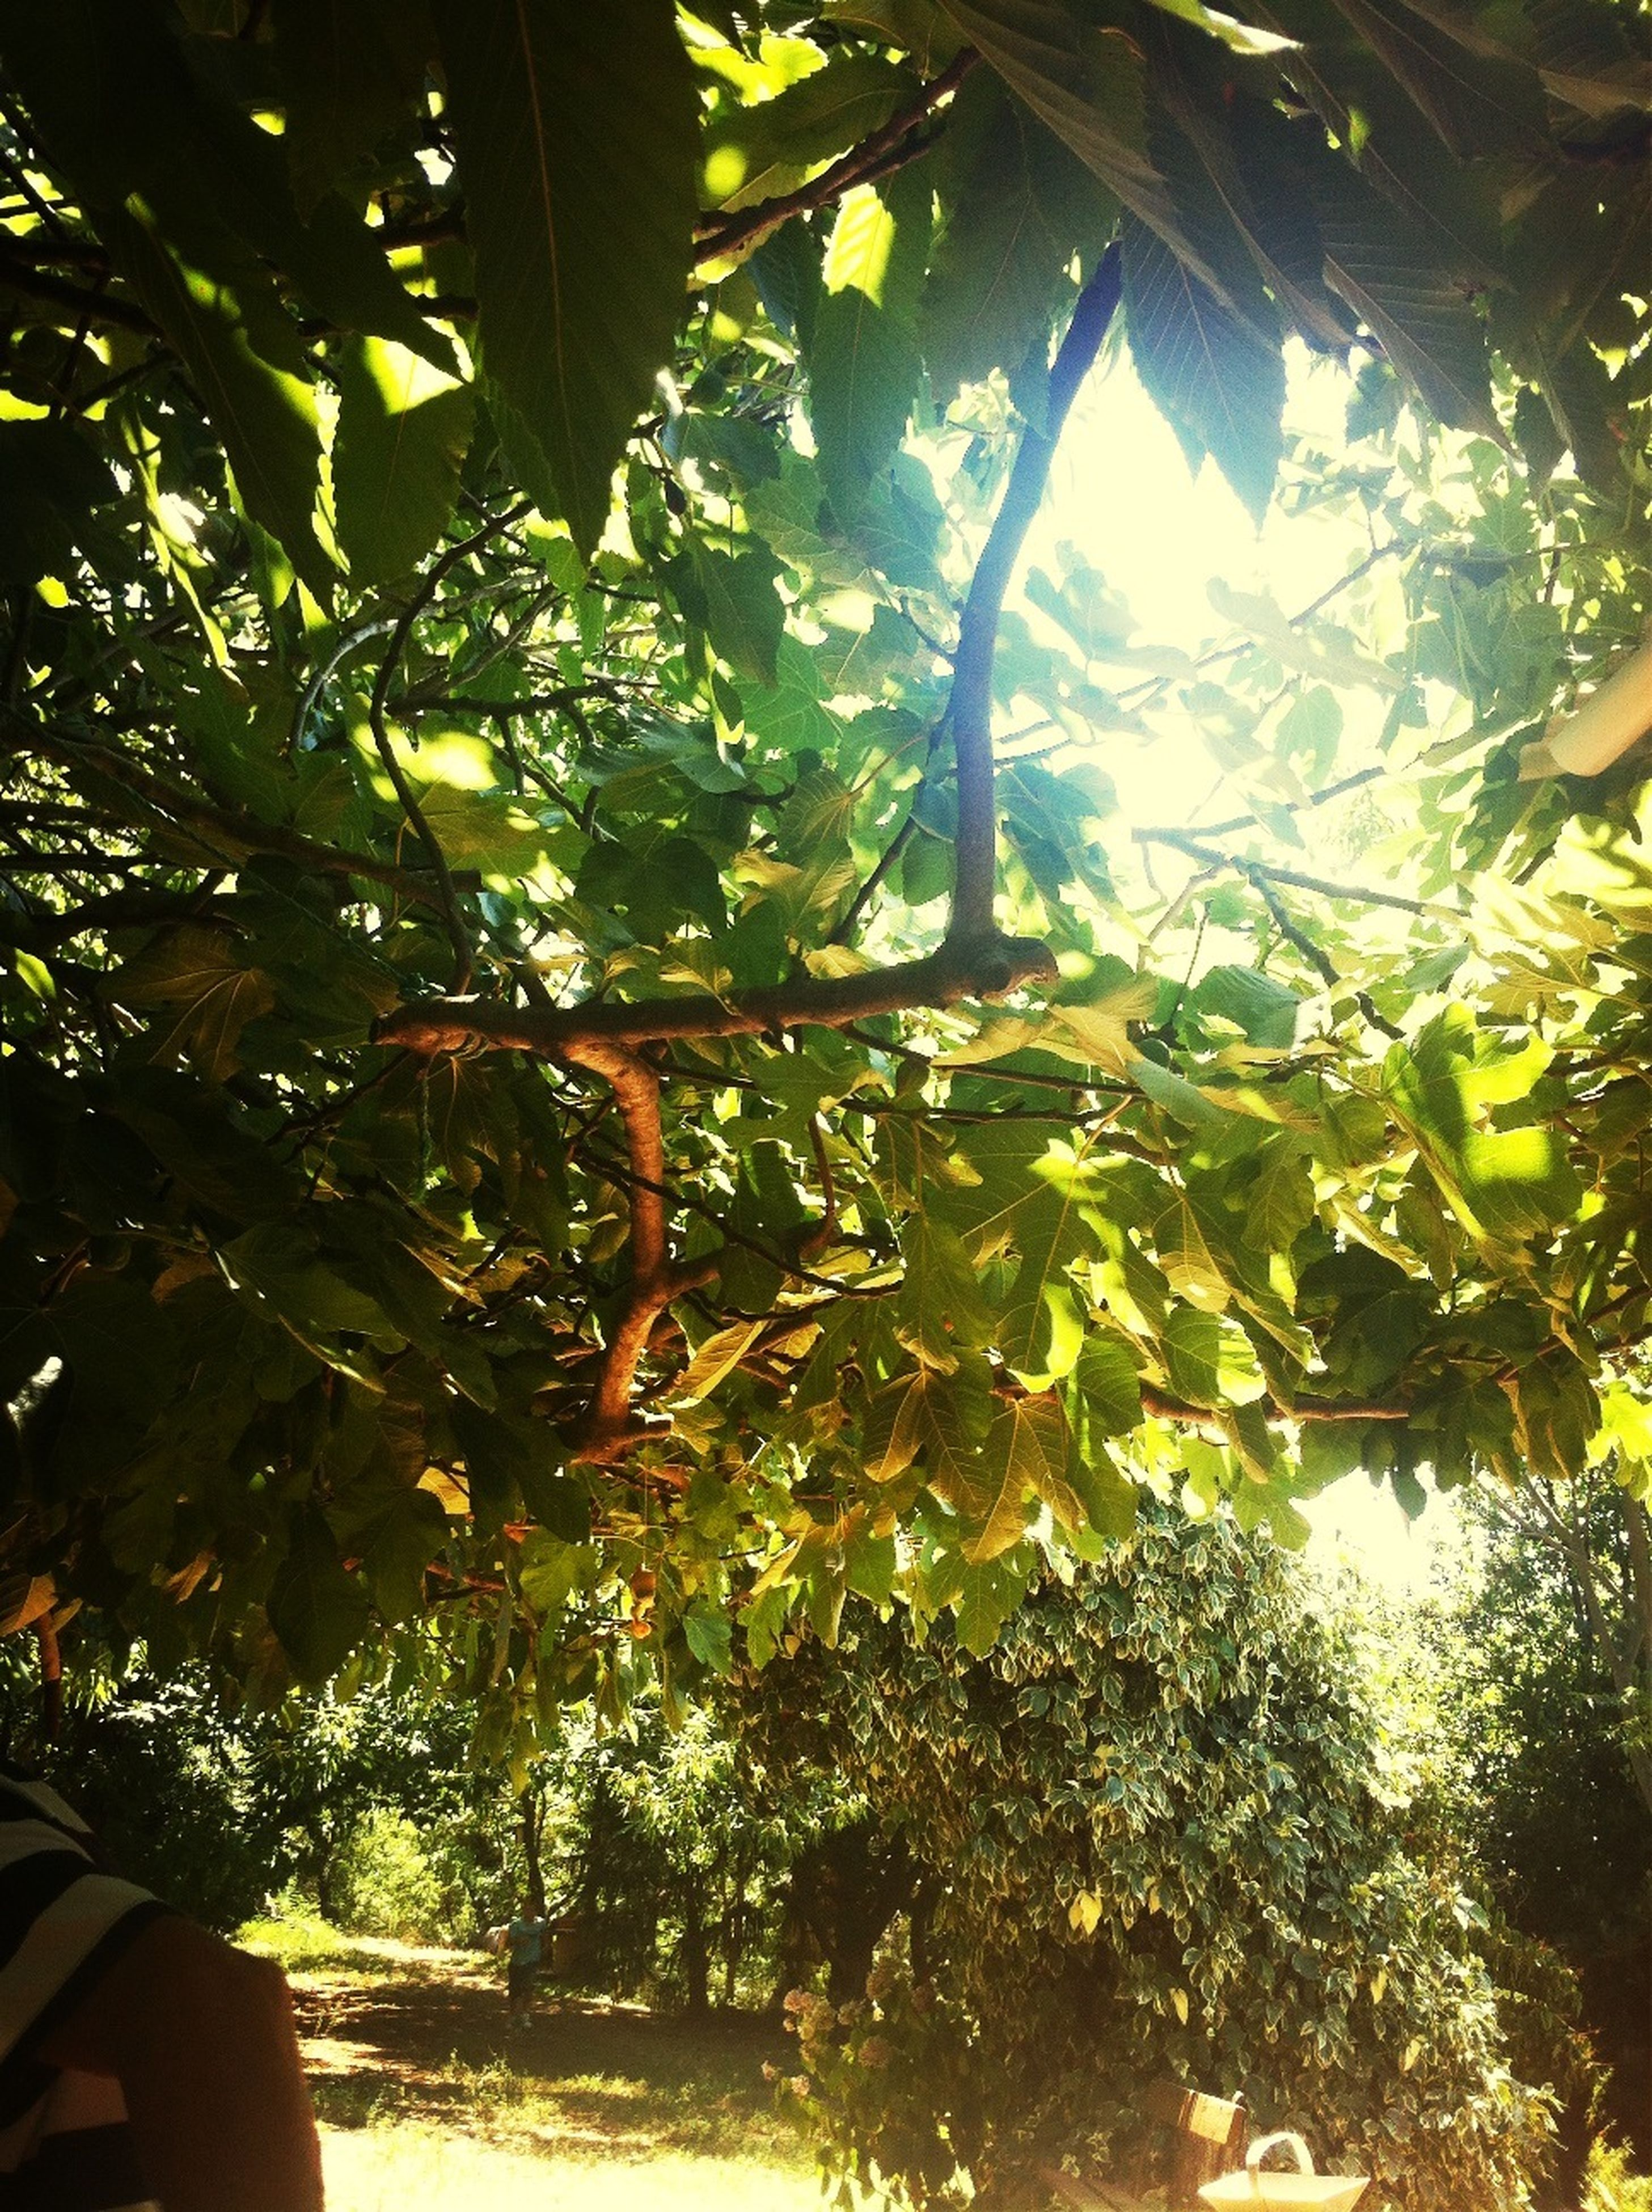 tree, growth, branch, tranquility, sunlight, leaf, nature, green color, tree trunk, tranquil scene, beauty in nature, scenics, sun, day, sunbeam, outdoors, low angle view, forest, sunny, sky